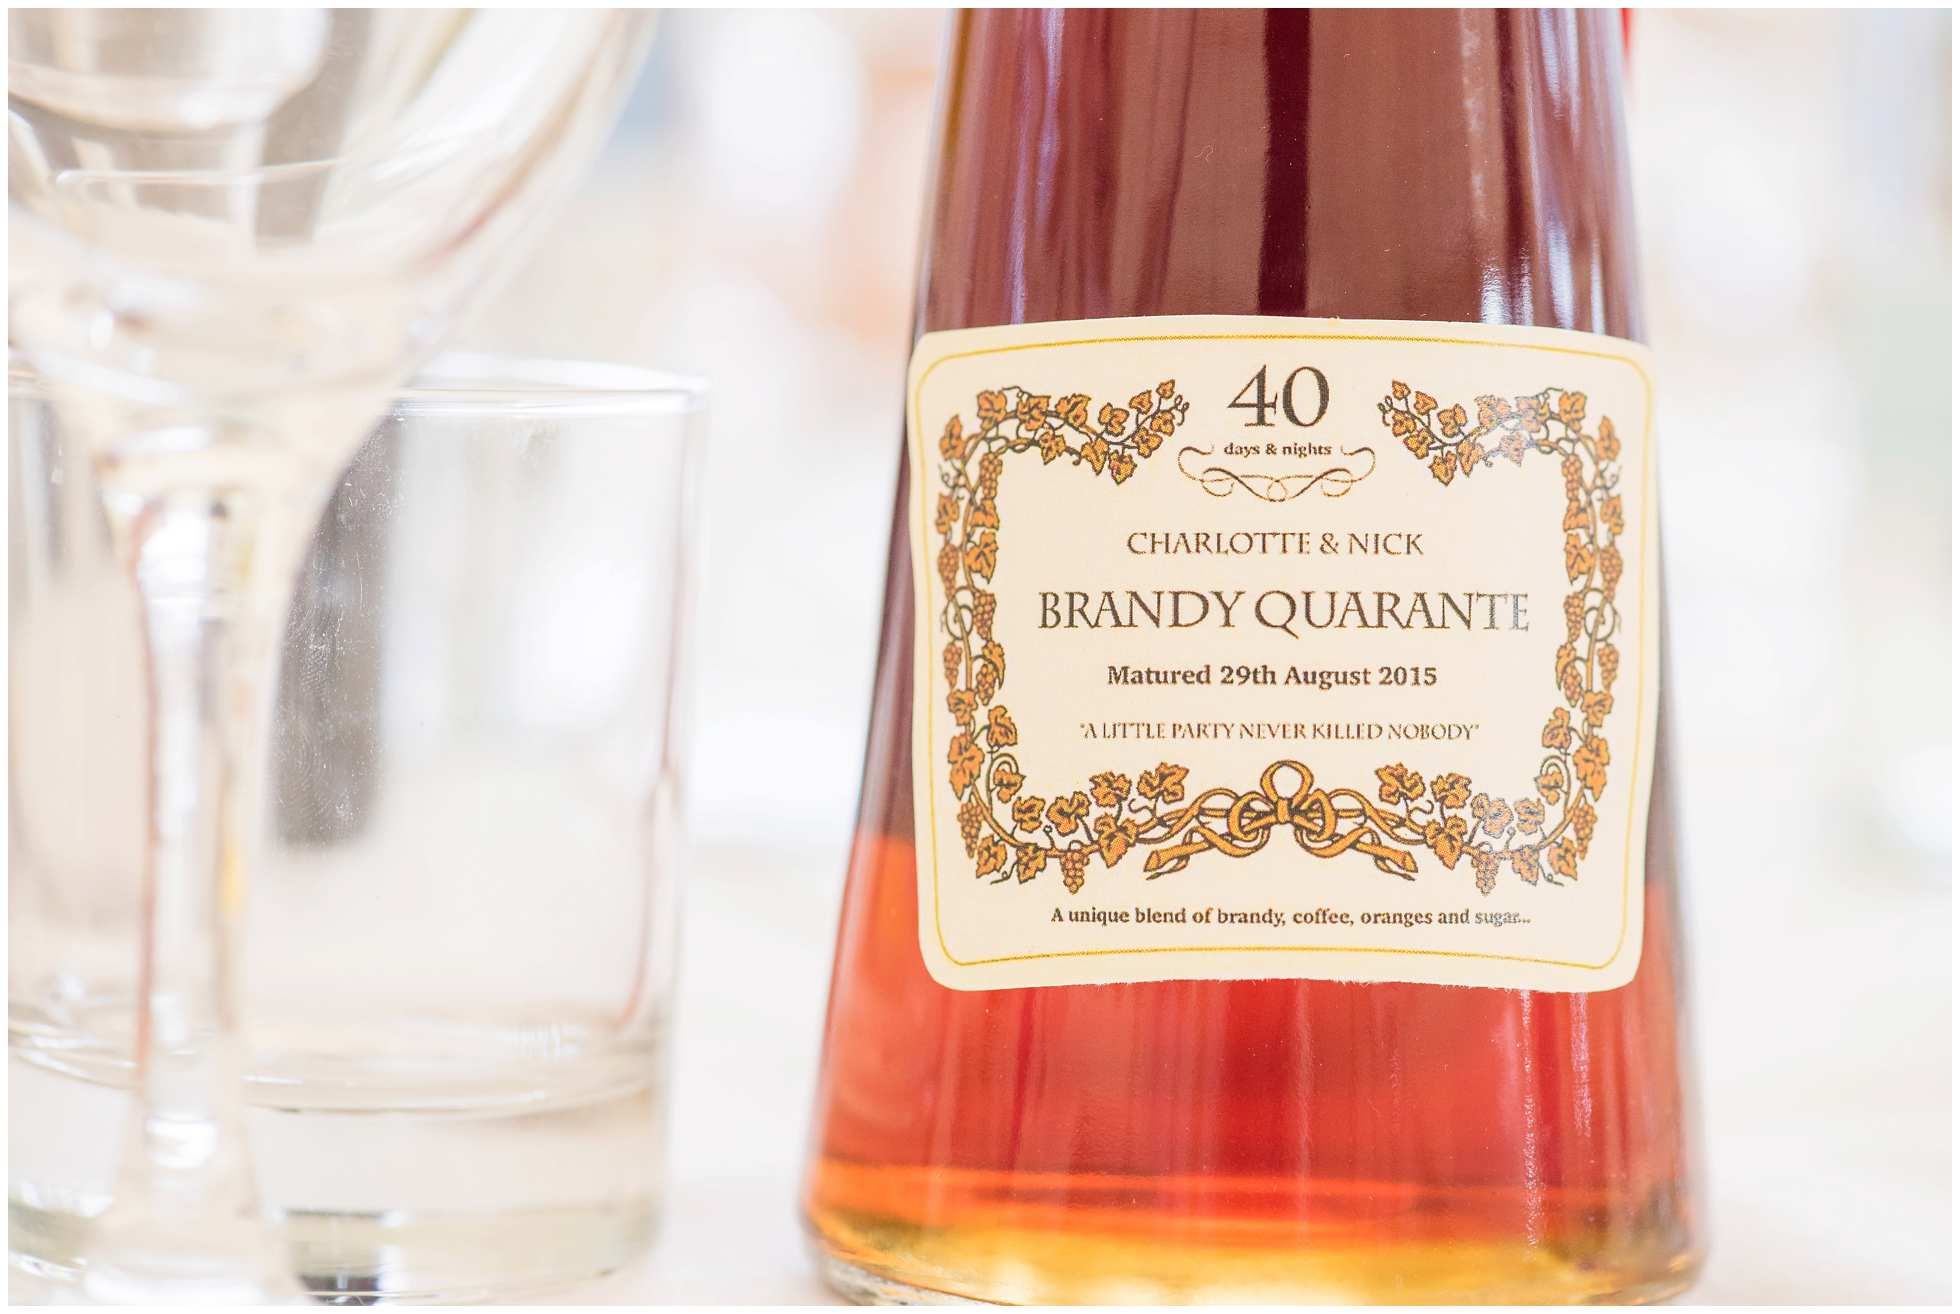 Brandy for the wedding